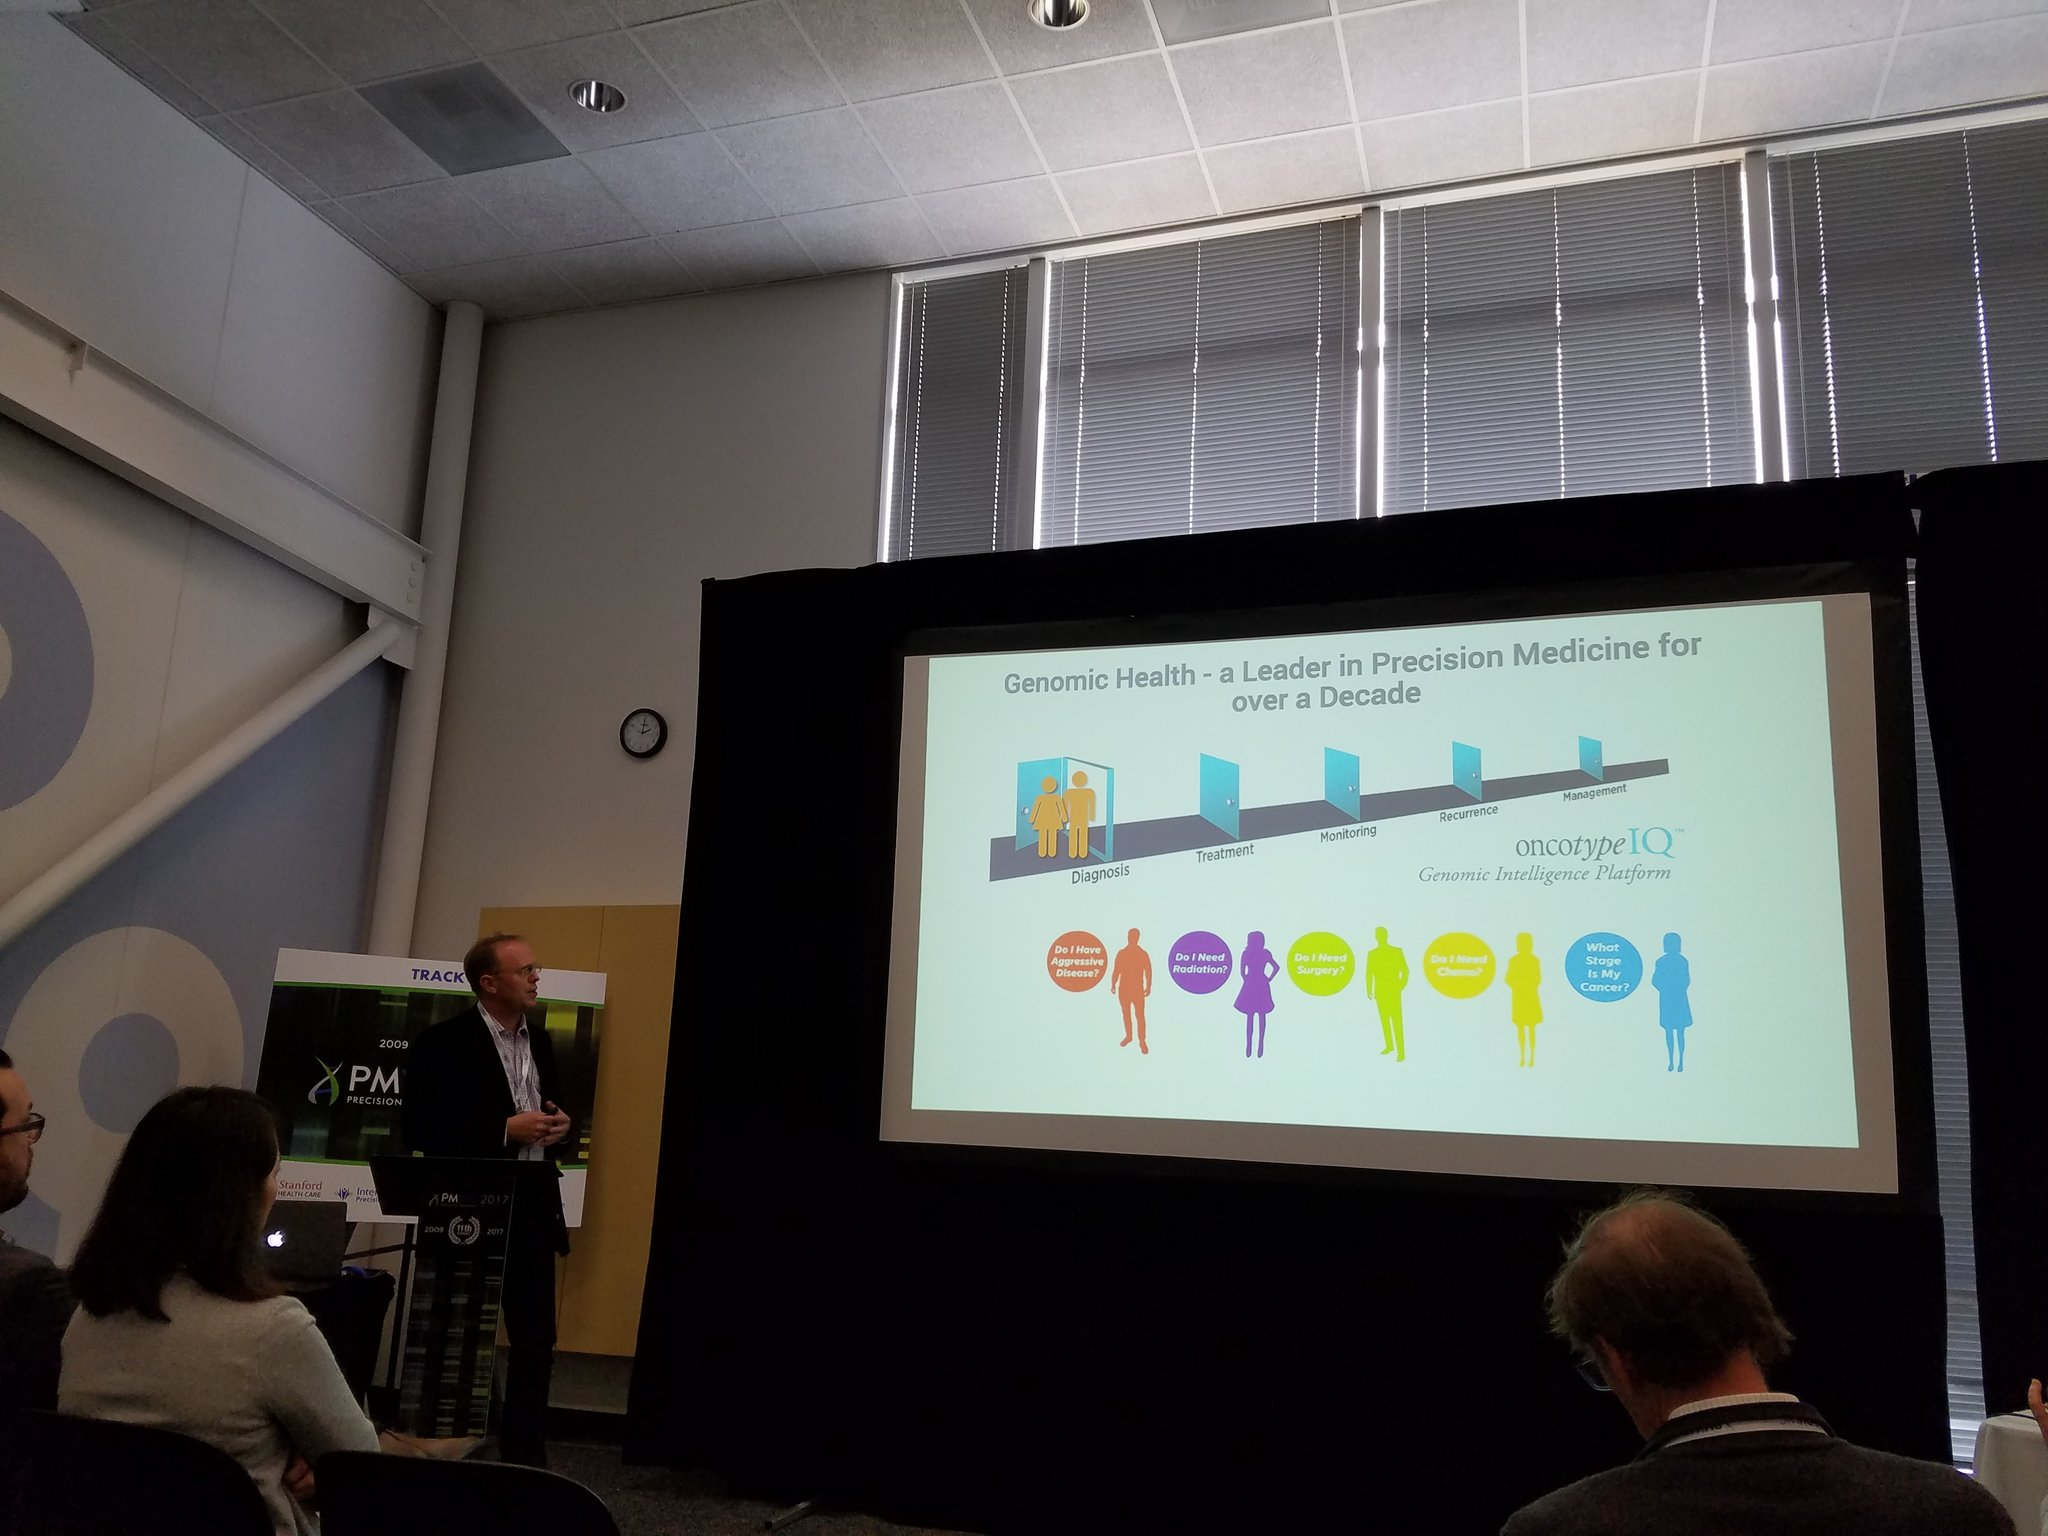 Dr. Baehner discussing @GenomicHealth providing value-based care in the era of #precisionmedicine through @oncotypeIQ Platform at #PMWC17 https://t.co/rt29cdSupB